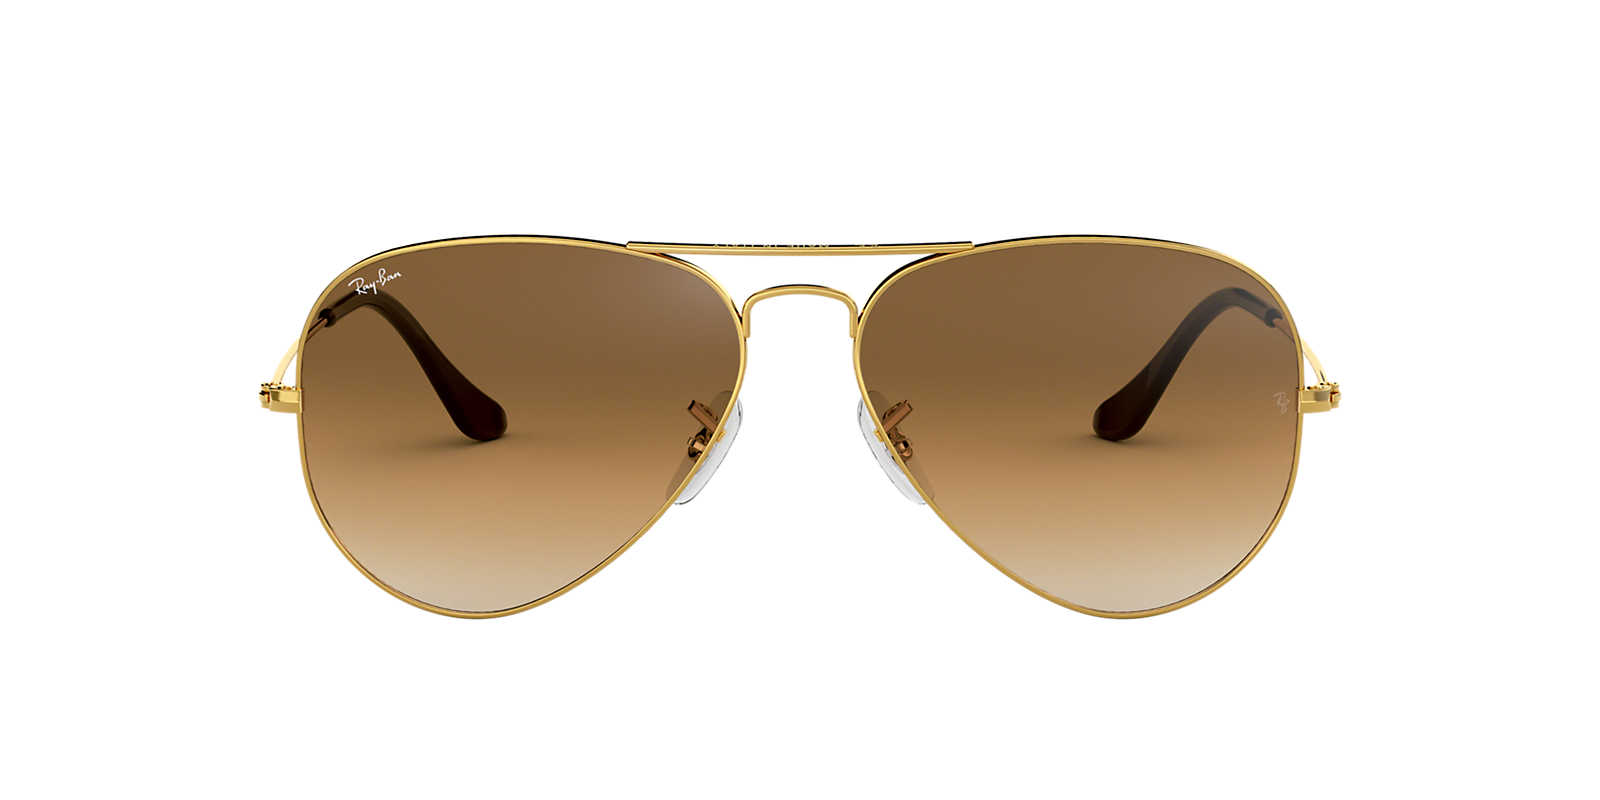 imitation ray ban aviator sunglasses  ray ban gold shiny rb3025 58 original aviator brown lenses 58mm